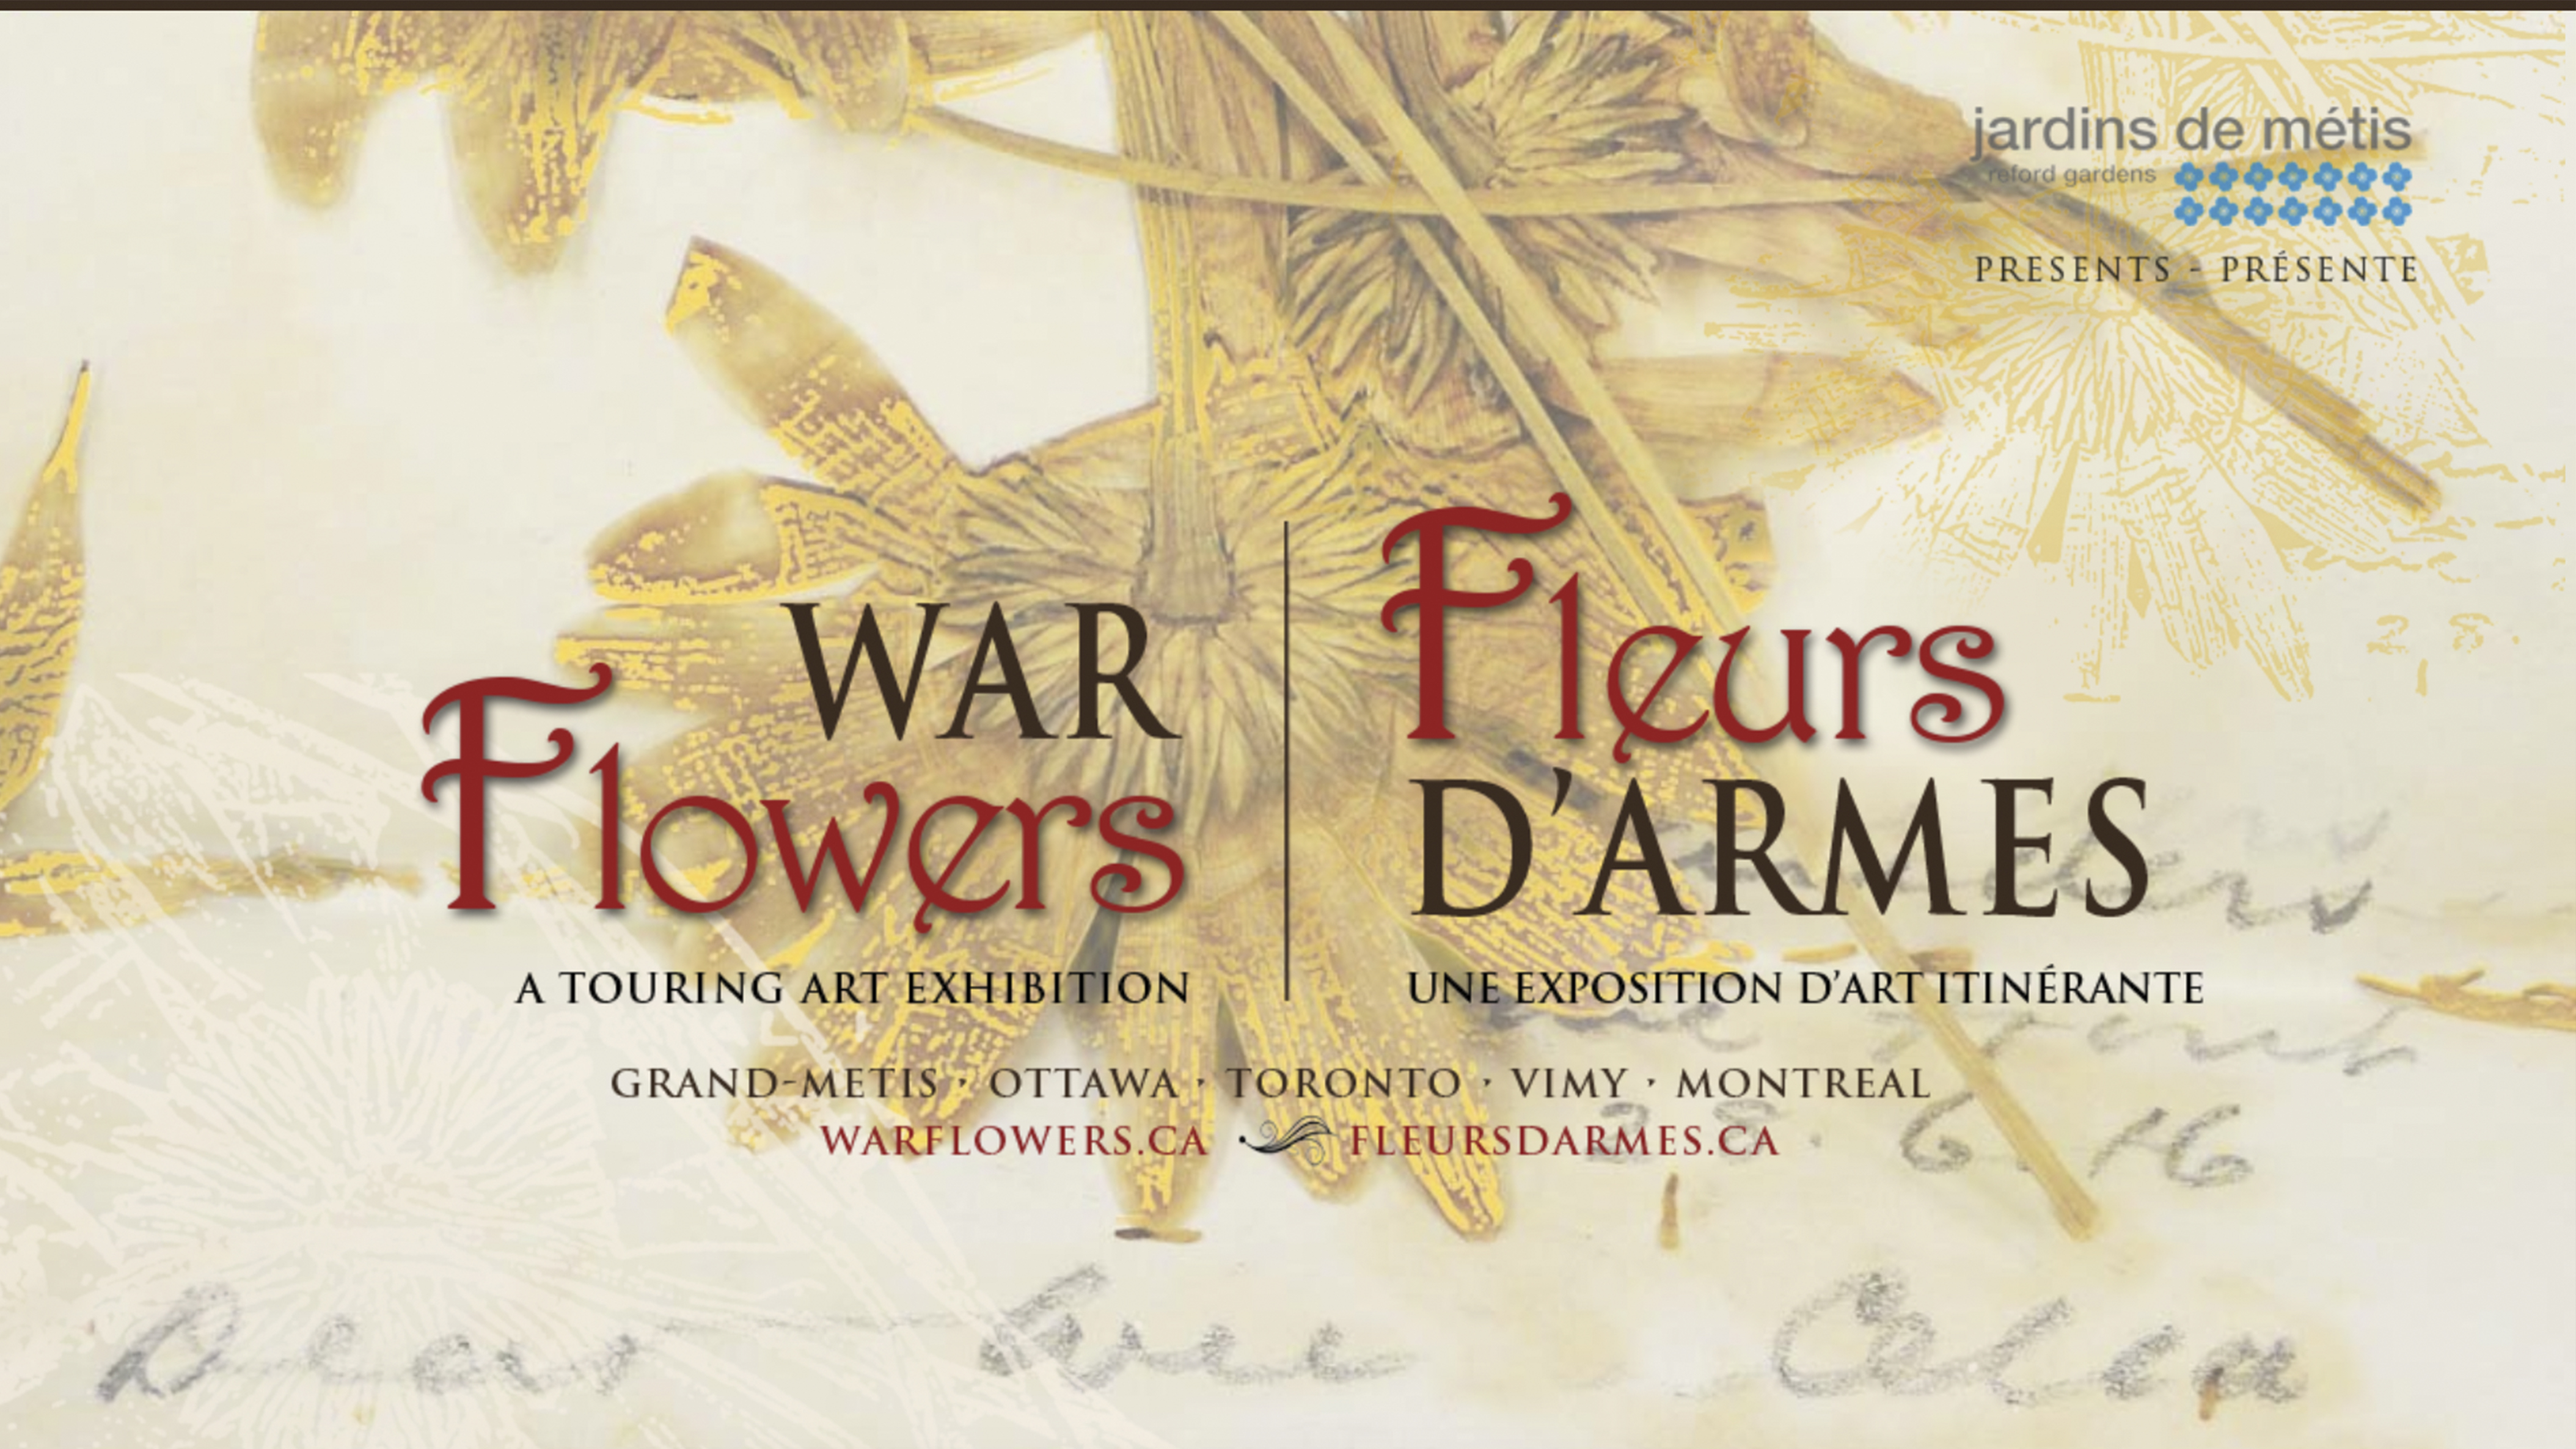 A war story told in flowers and scents